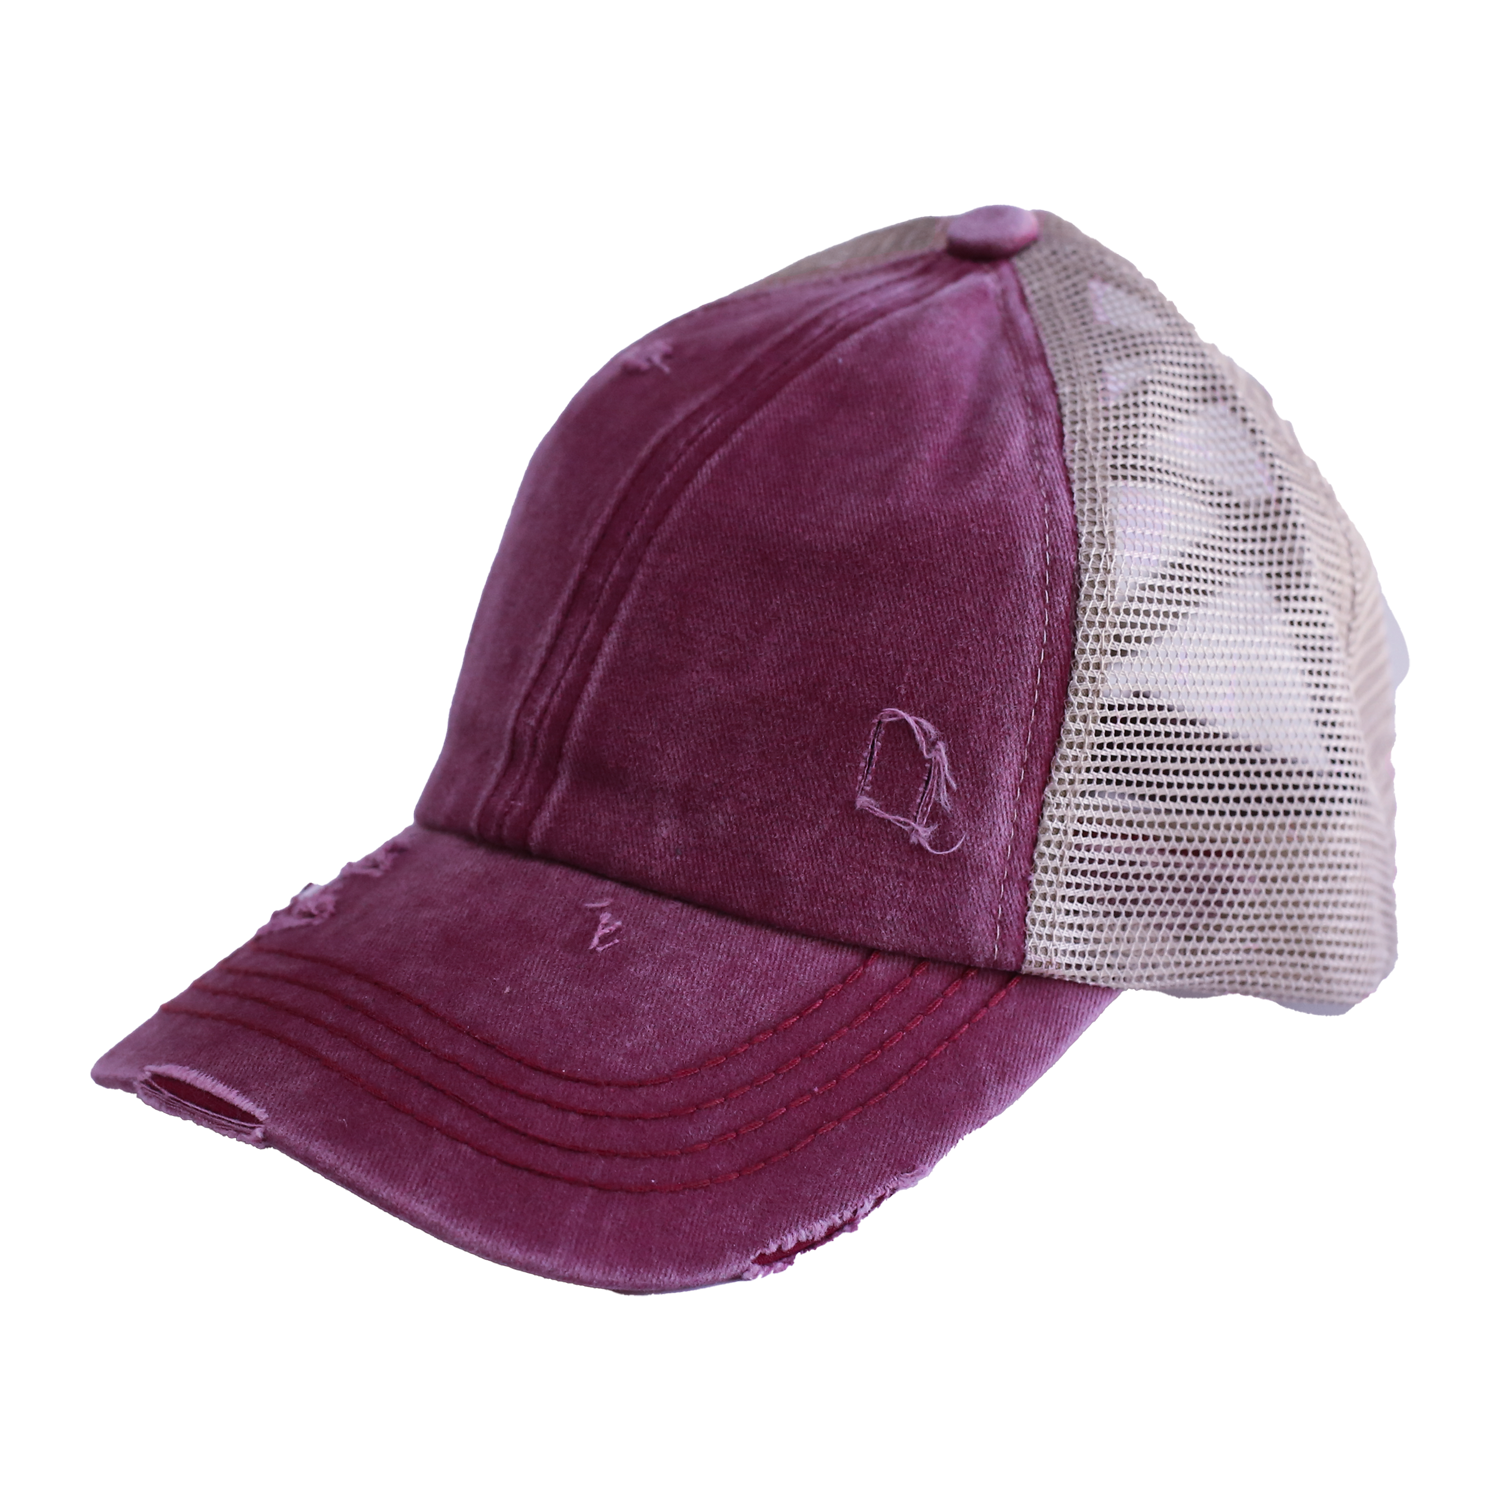 BT-780 C.C Criss Cross Pony Cap BERRY/BIEGE